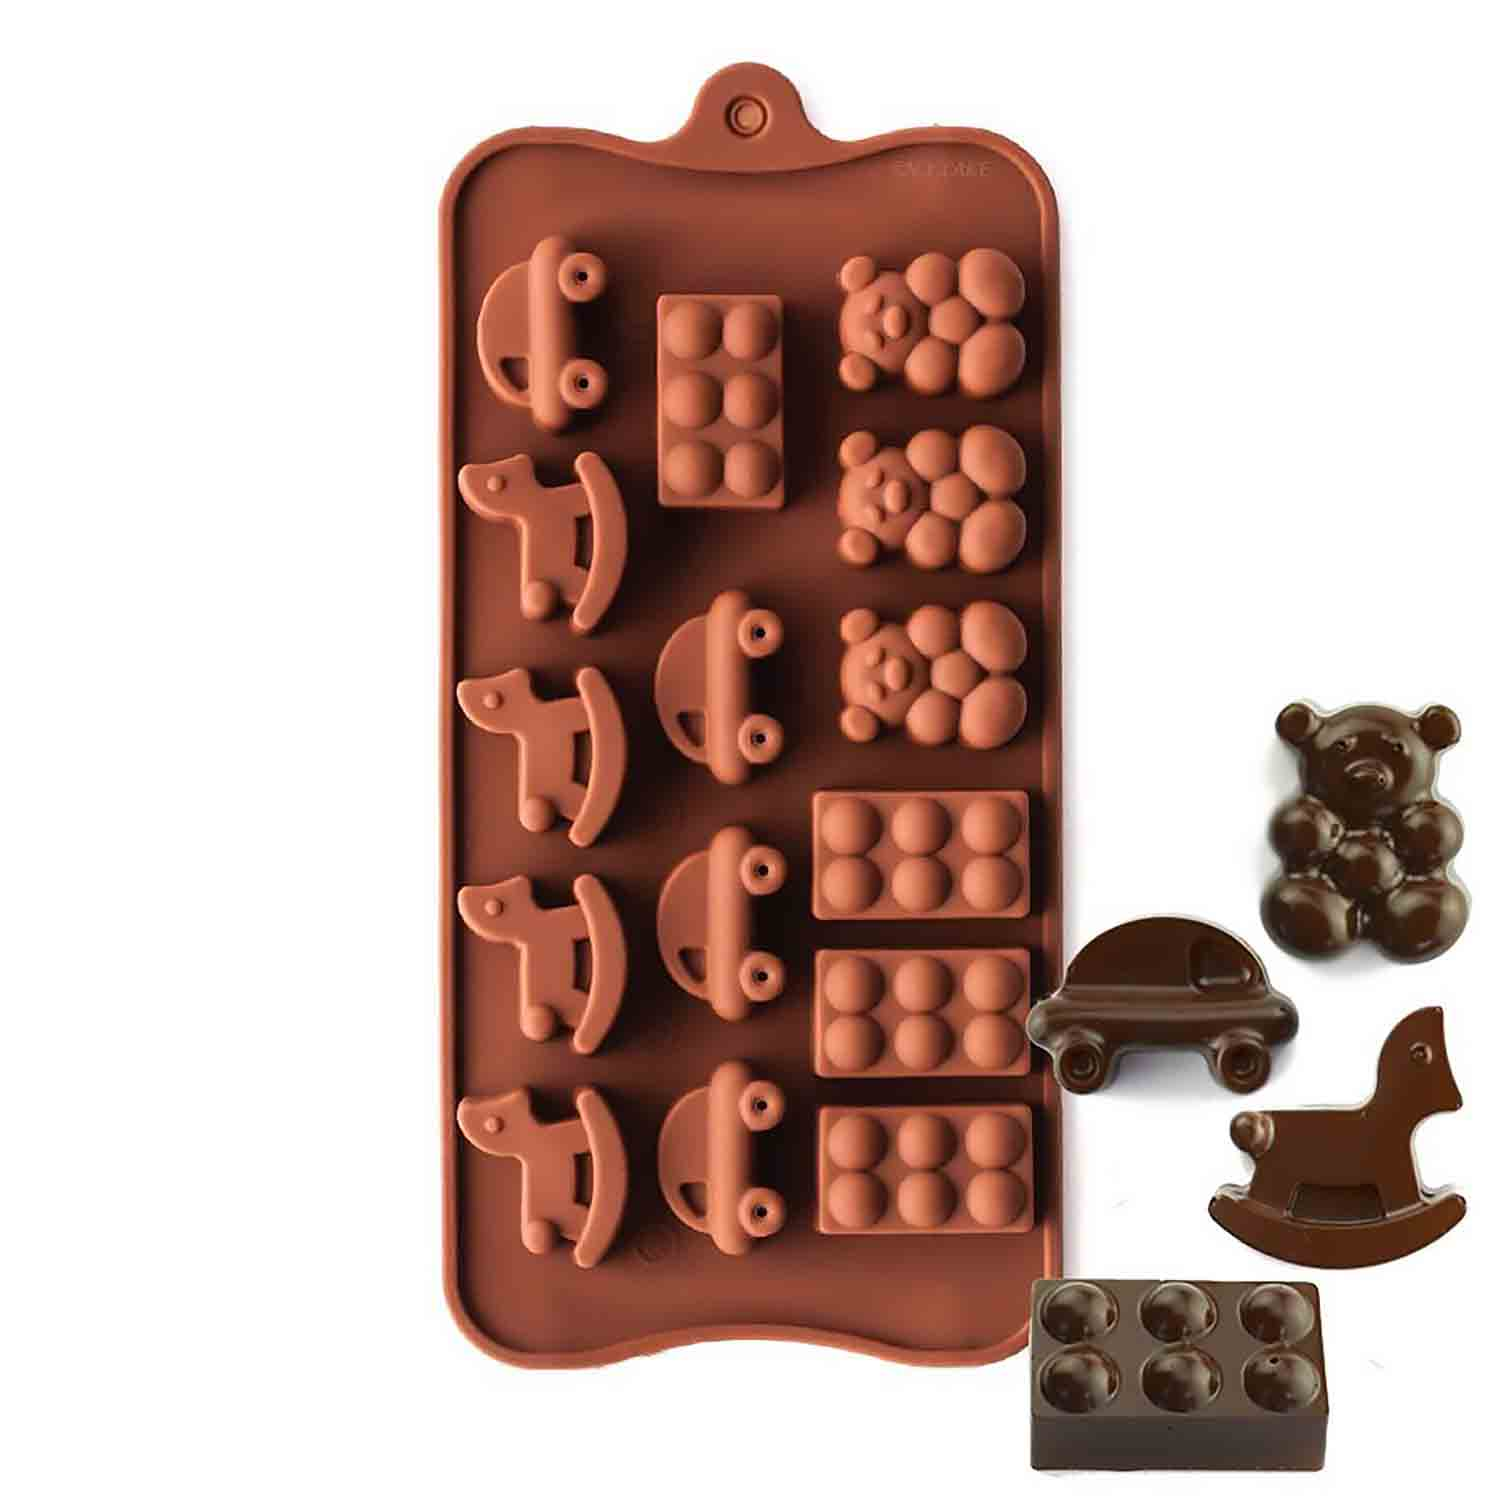 Playtime Silicone Chocolate Candy Mold